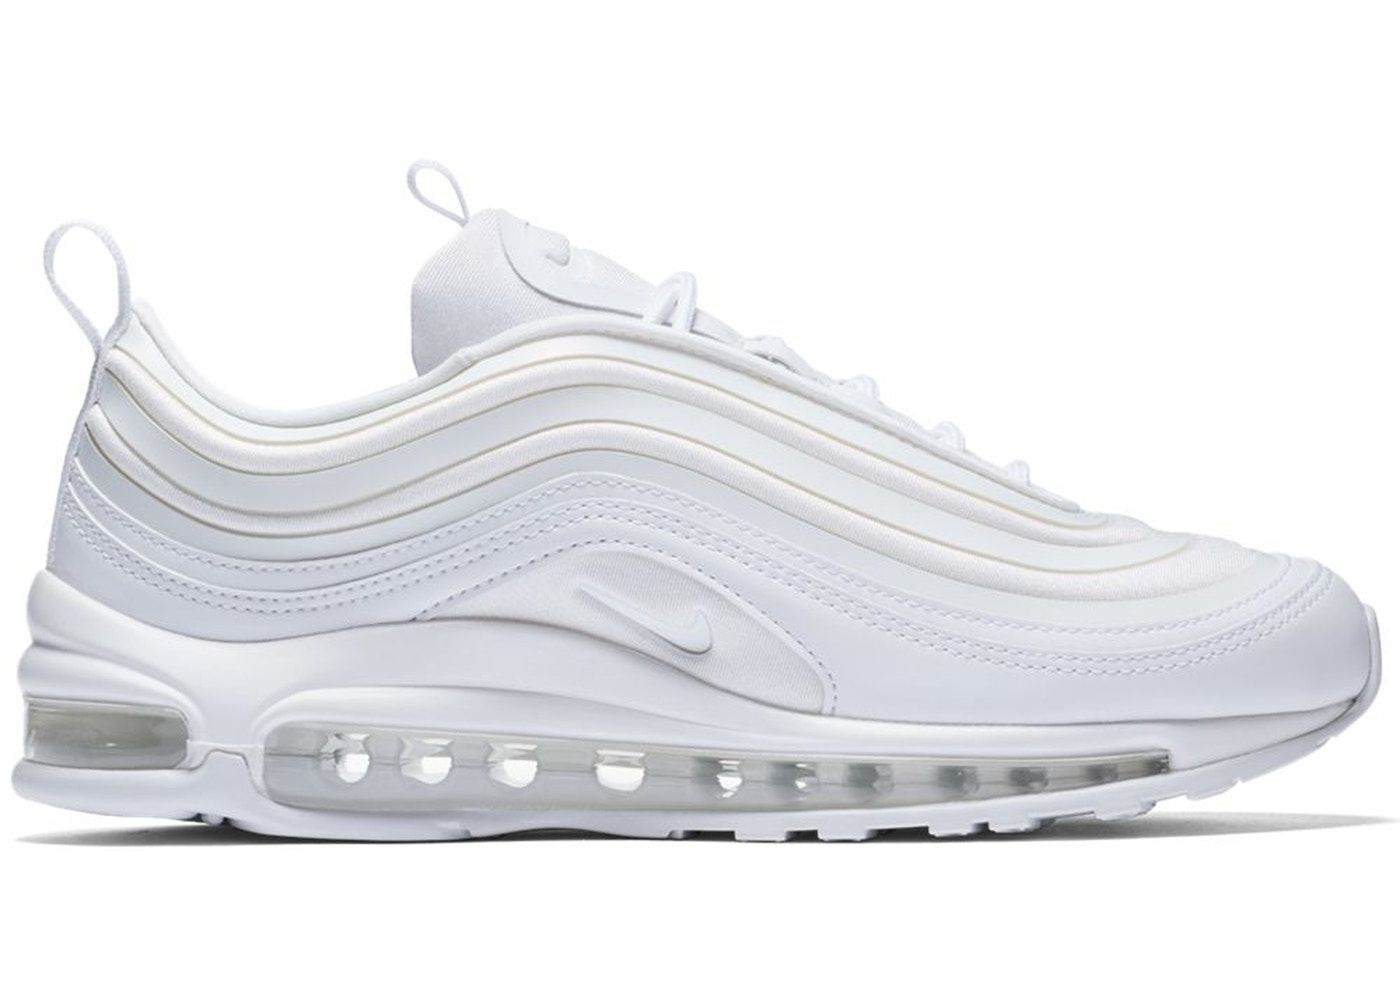 Check Out The Air Max 97 Ultra 17 Triple White W Available On